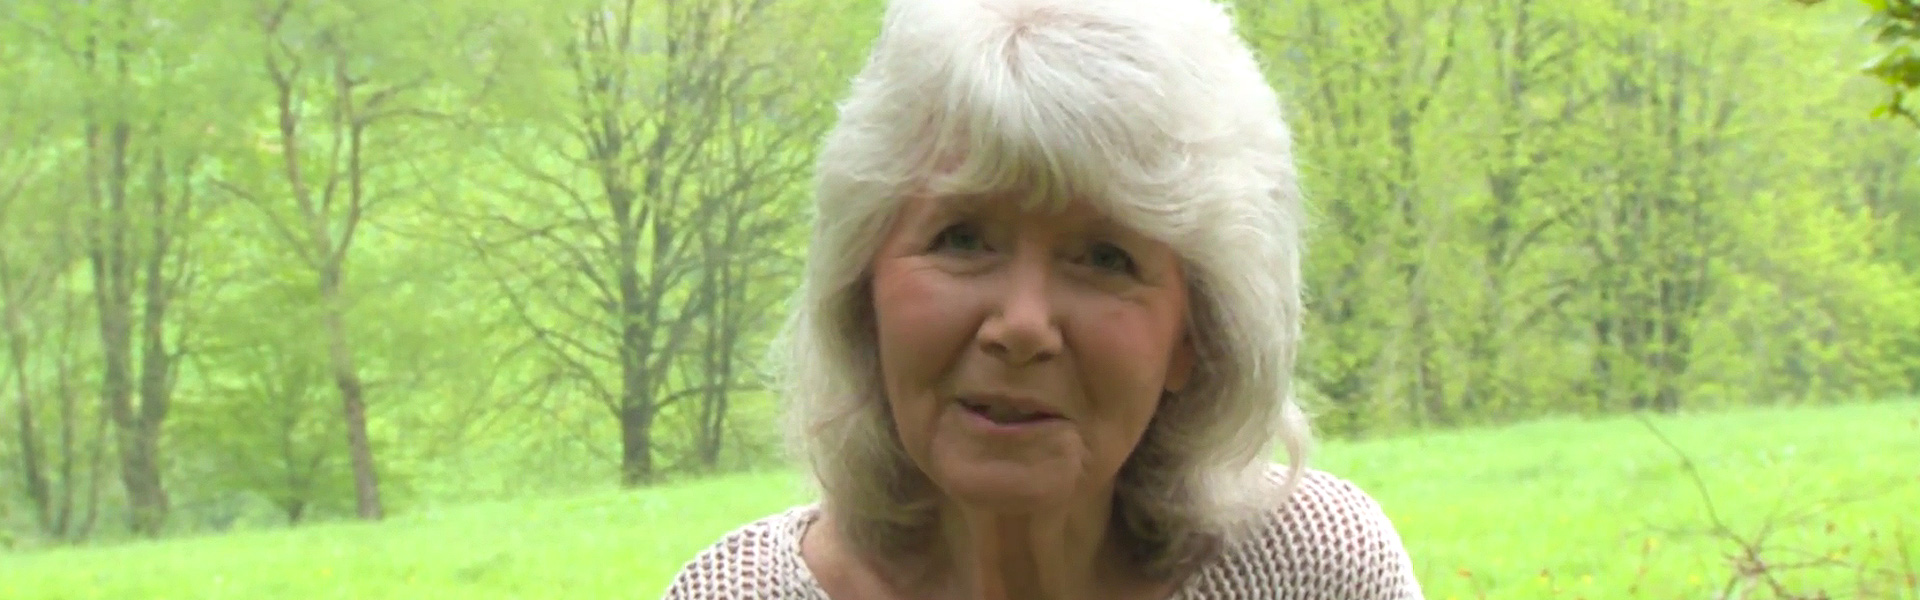 Exclusive Video! Jilly Cooper Takes us on a Tour of the House that Inspired Penscombe Court in Her New Book Mount!